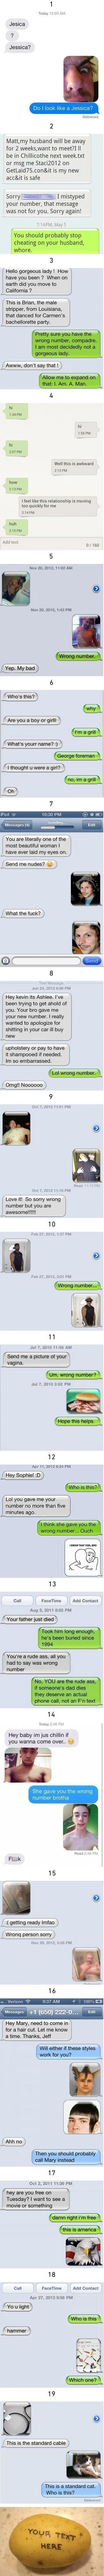 19 Funniest Wrong Number Texts 13 has a point Funny Memes Tumblr, Funny Quotes, Super Funny, Really Funny, Funny Wrong Number Texts, Funny Text Conversations, Lol Text, Funny Text Messages, Just For Laughs